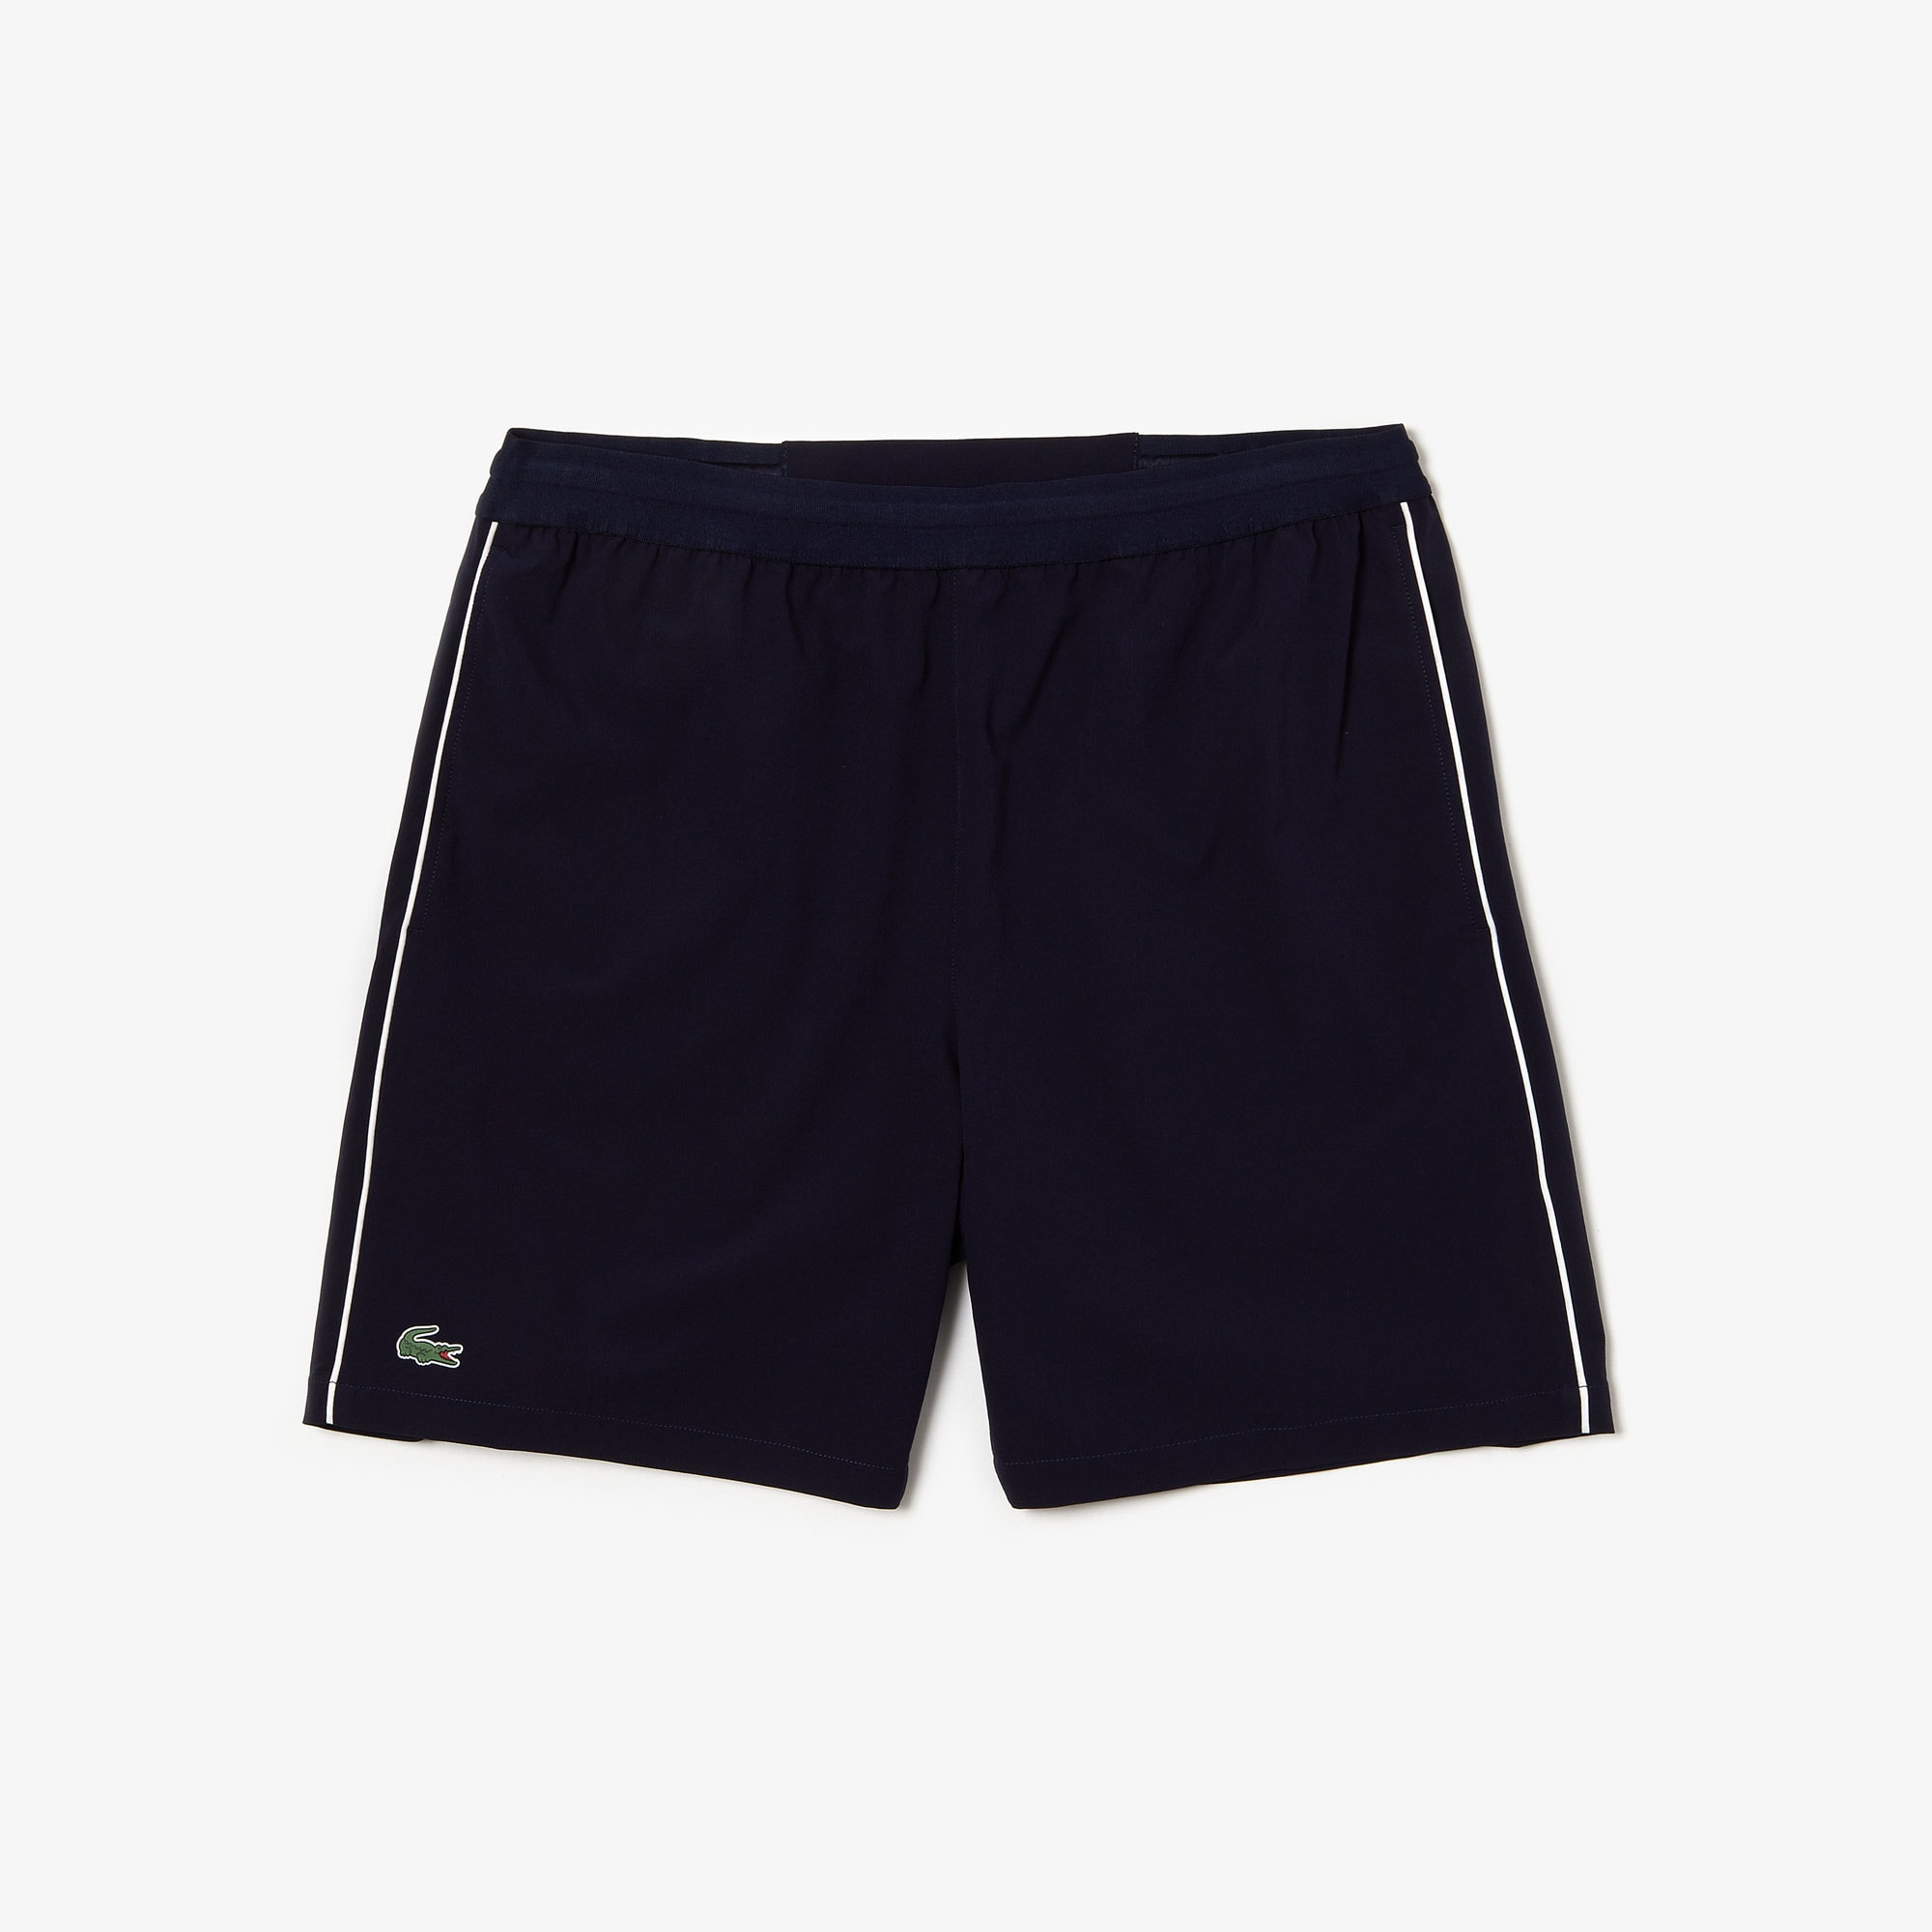 ItemsLacoste Collection Sport Collection All ItemsLacoste All Sport Collection All ItemsLacoste All ItemsLacoste Sport nN8wOPkX0